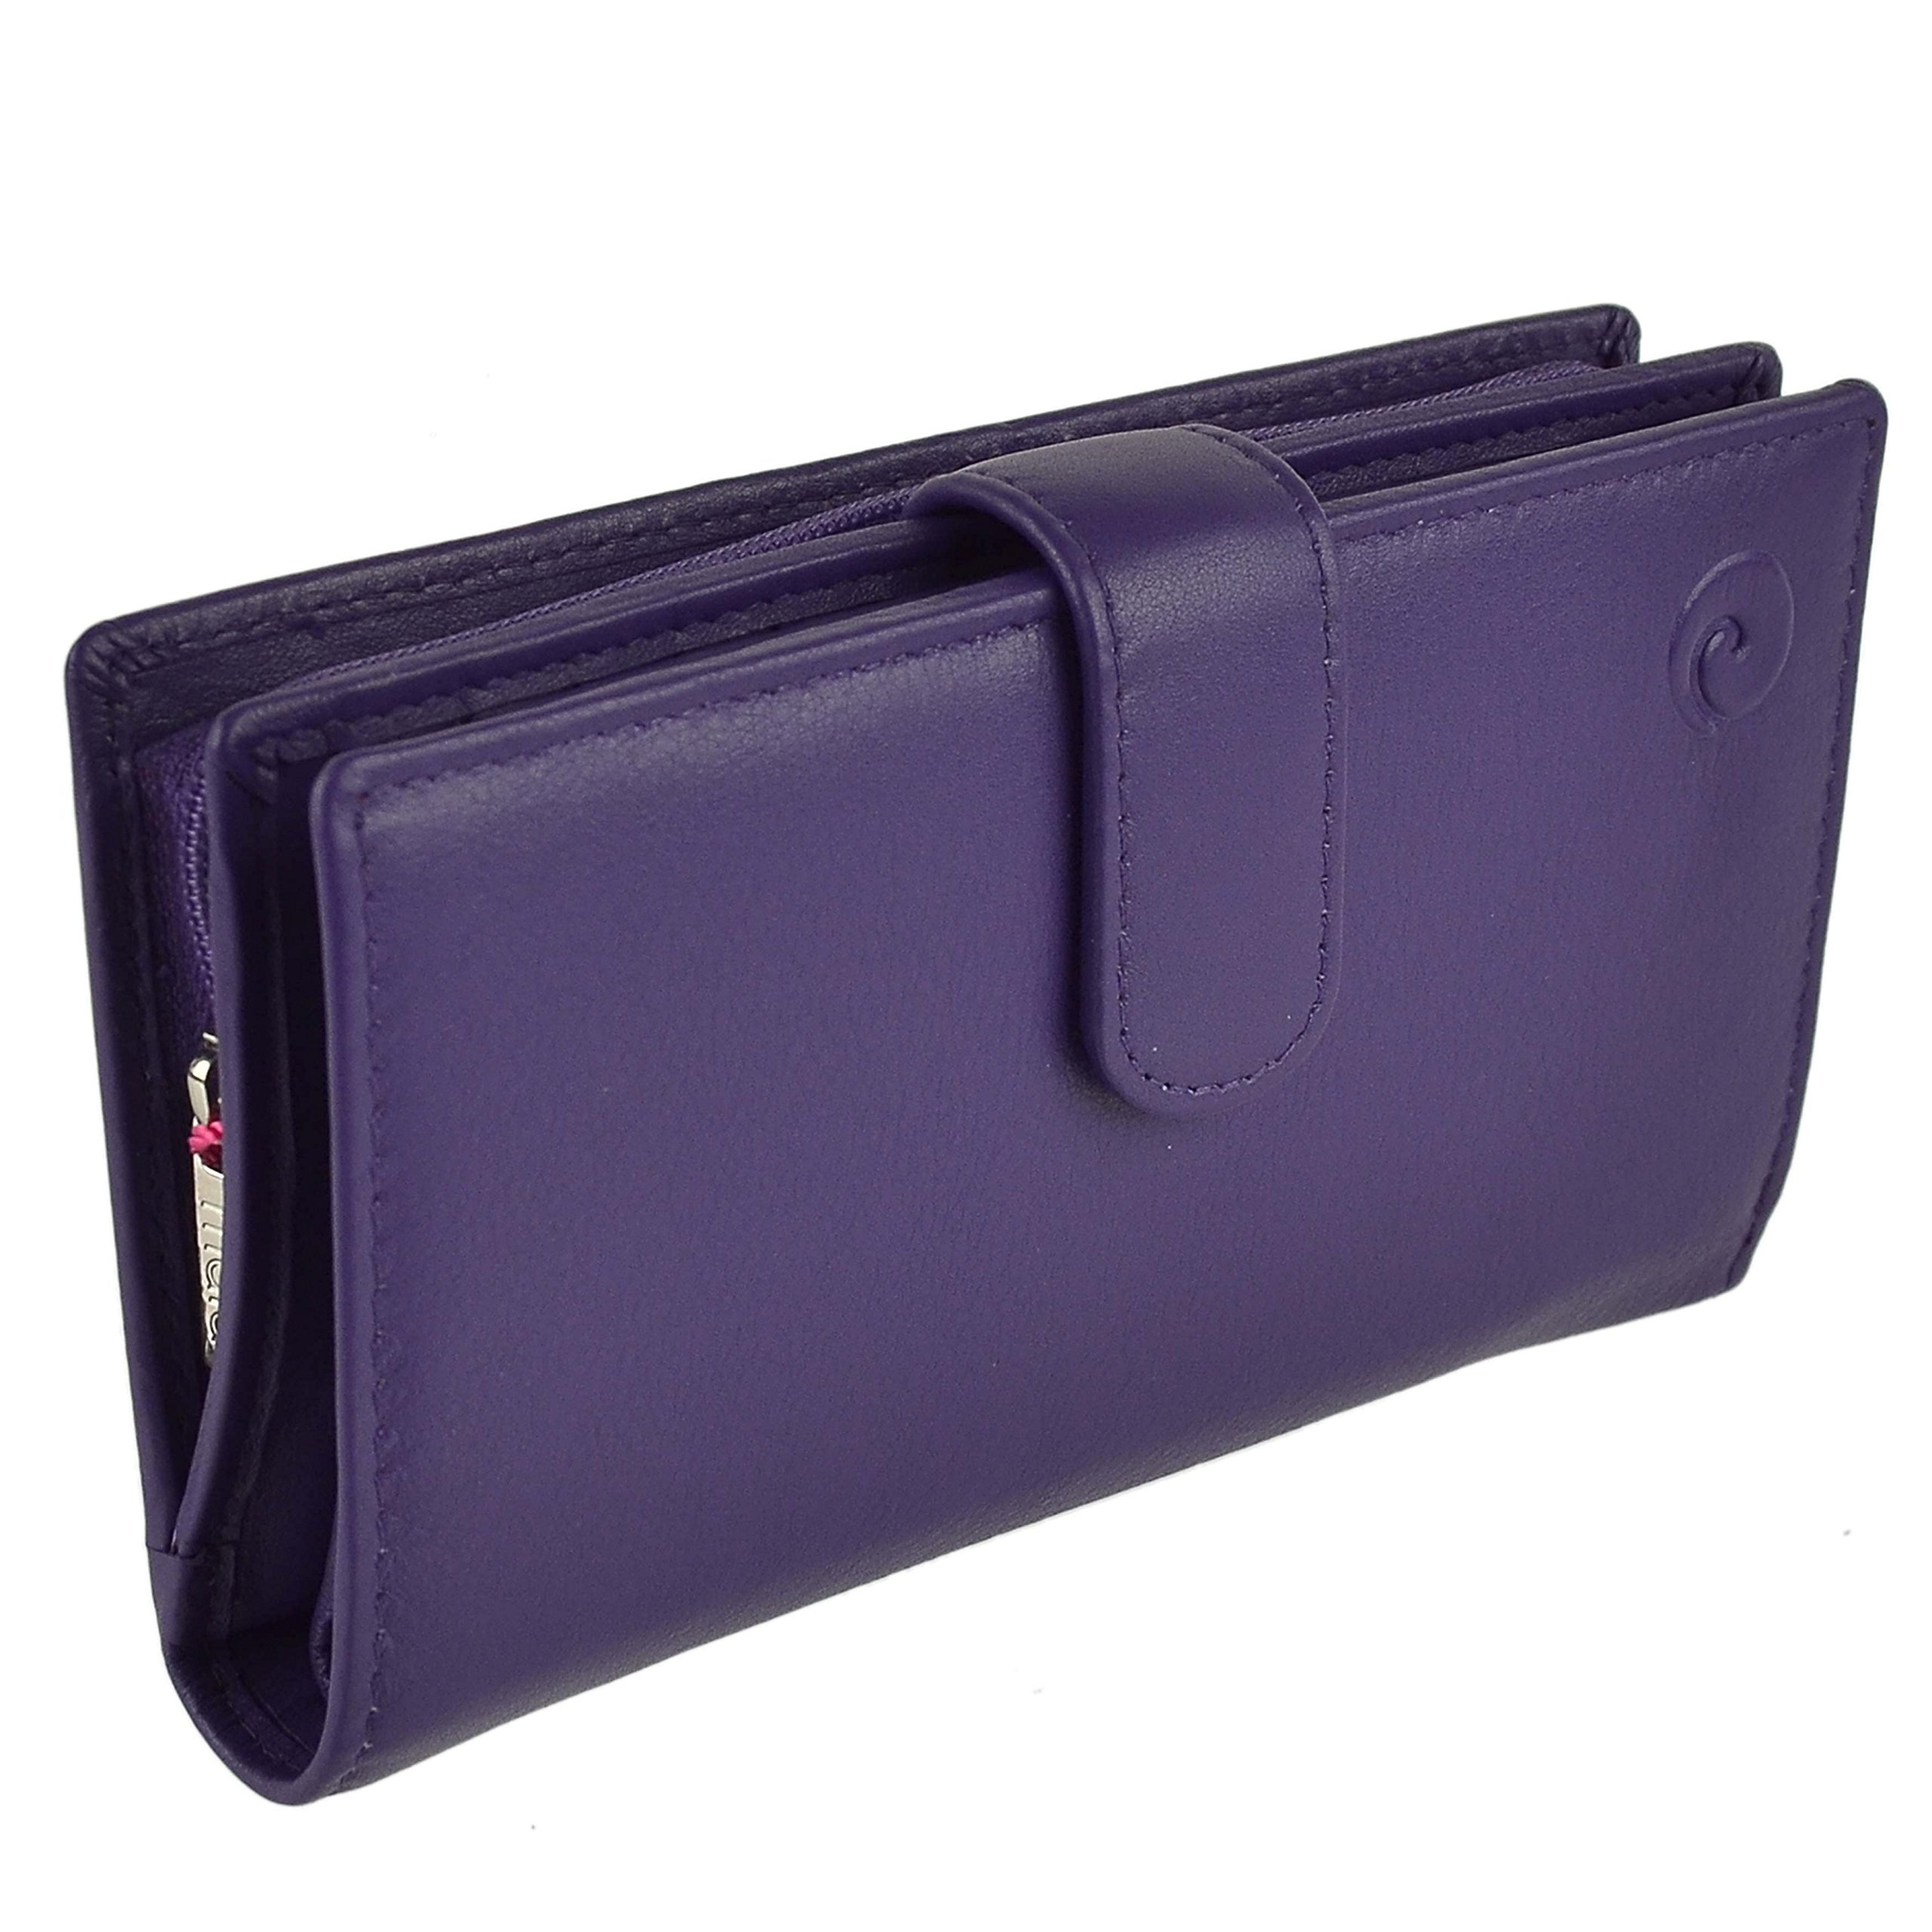 Mala Leather Women's Soft Leather Tabbed Rfid Protection Purse/Wallet One Size Purple